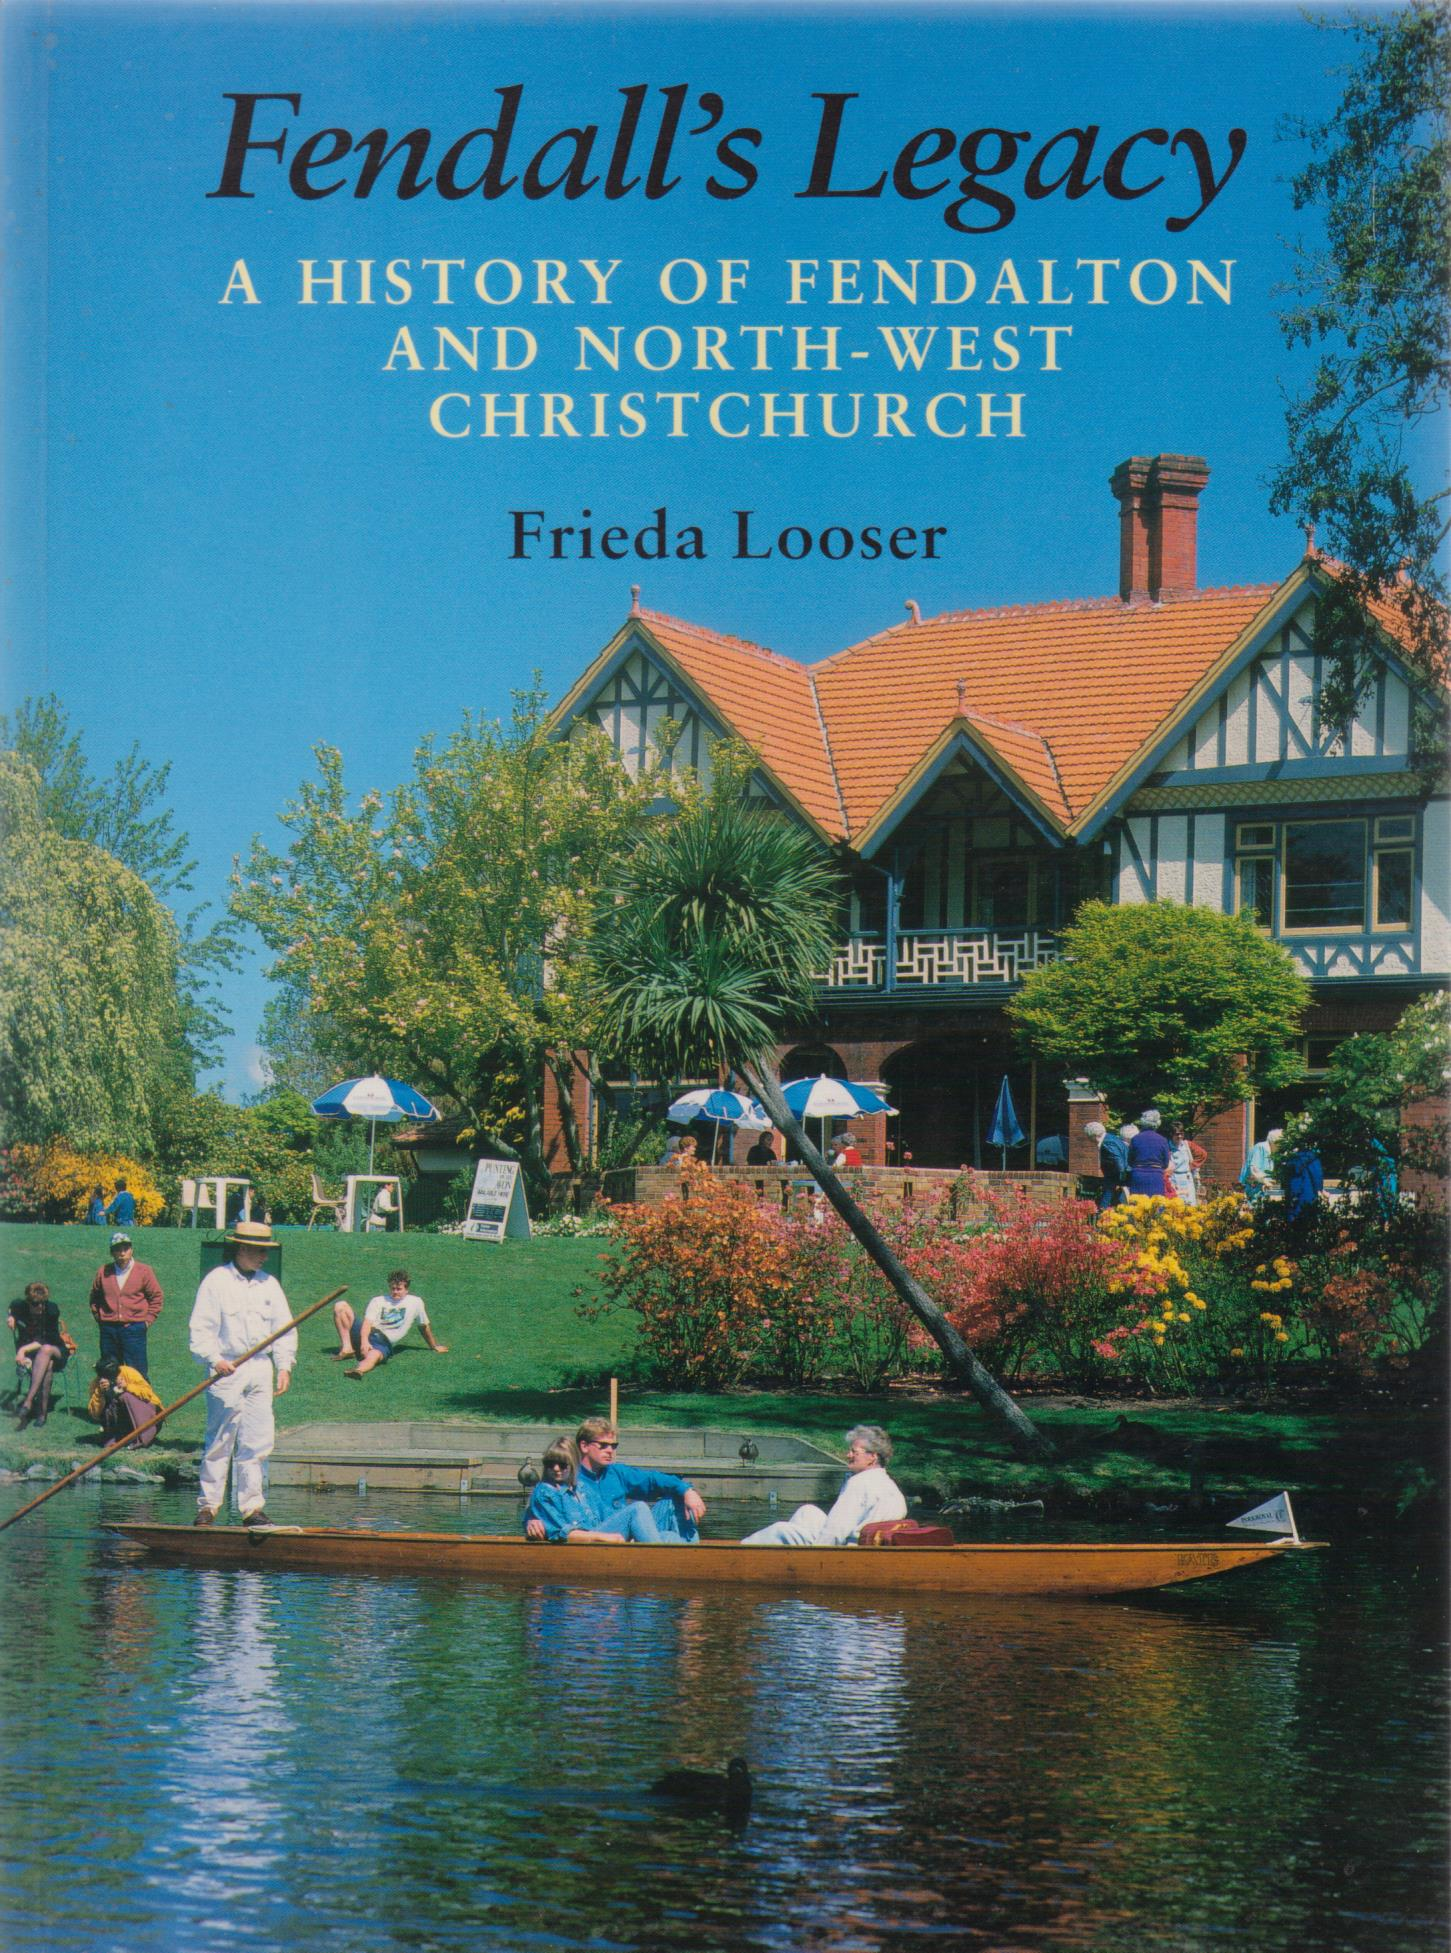 cover image of Fendall's Legacy, A history of Fendalton and North-West Christchurch for sale in New Zealand